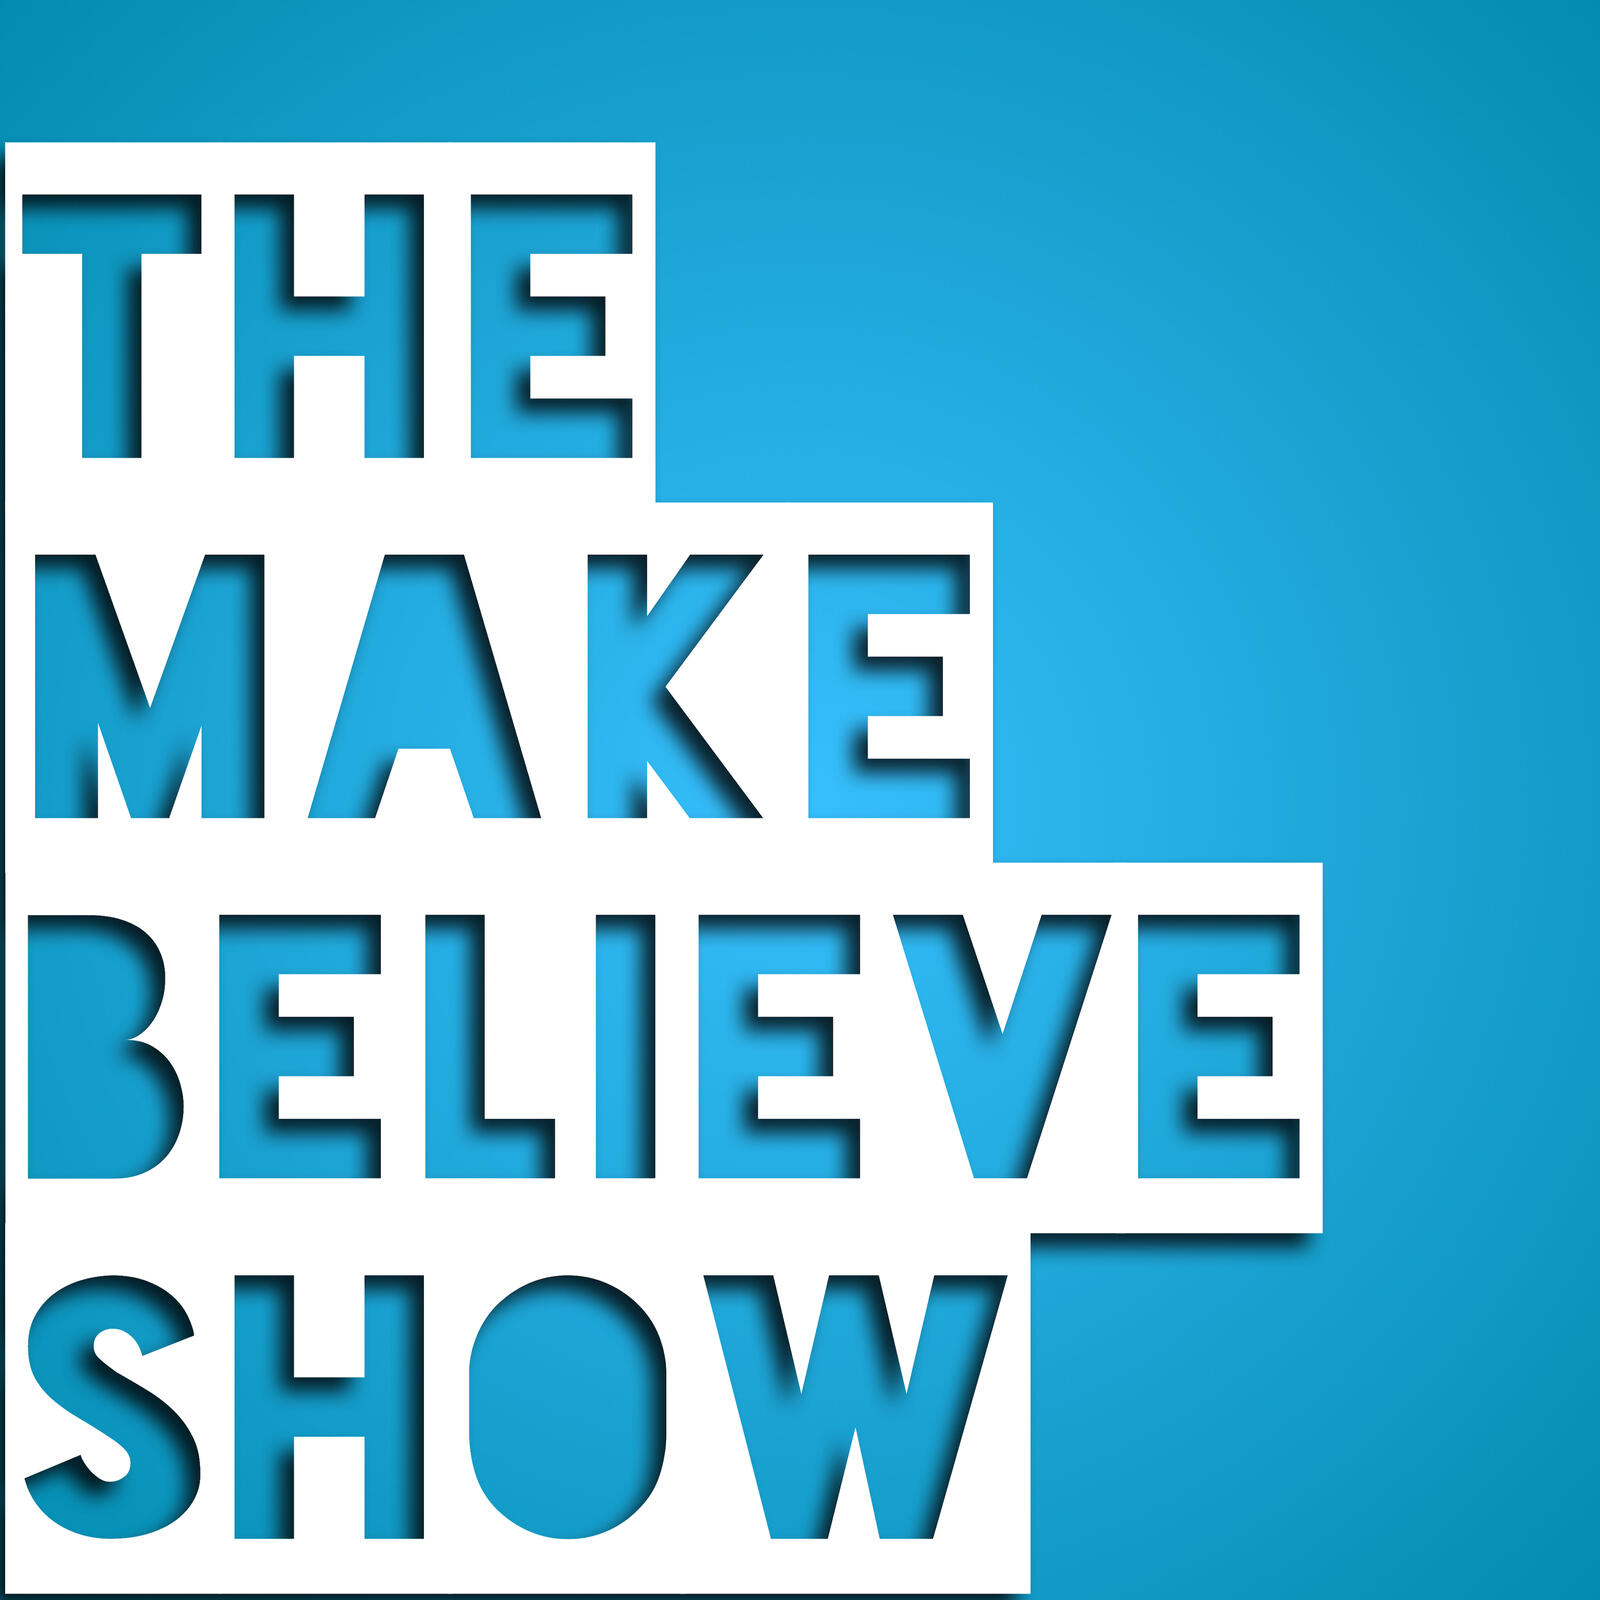 The Make Believe Show debuts TOMORROW!